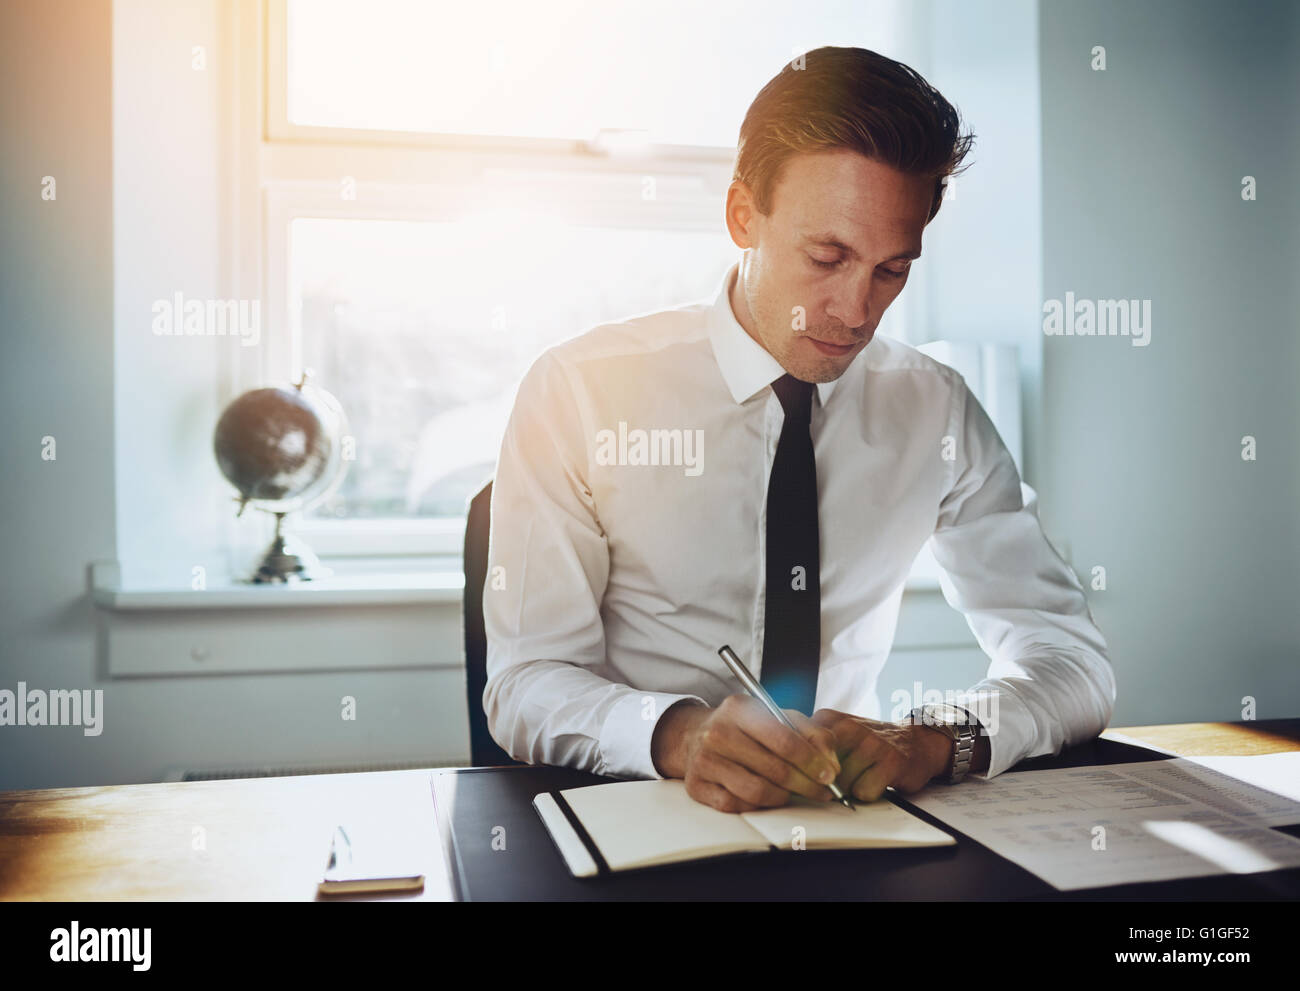 Executive business man working at office writing in a calendar and looking seriously - Stock Image